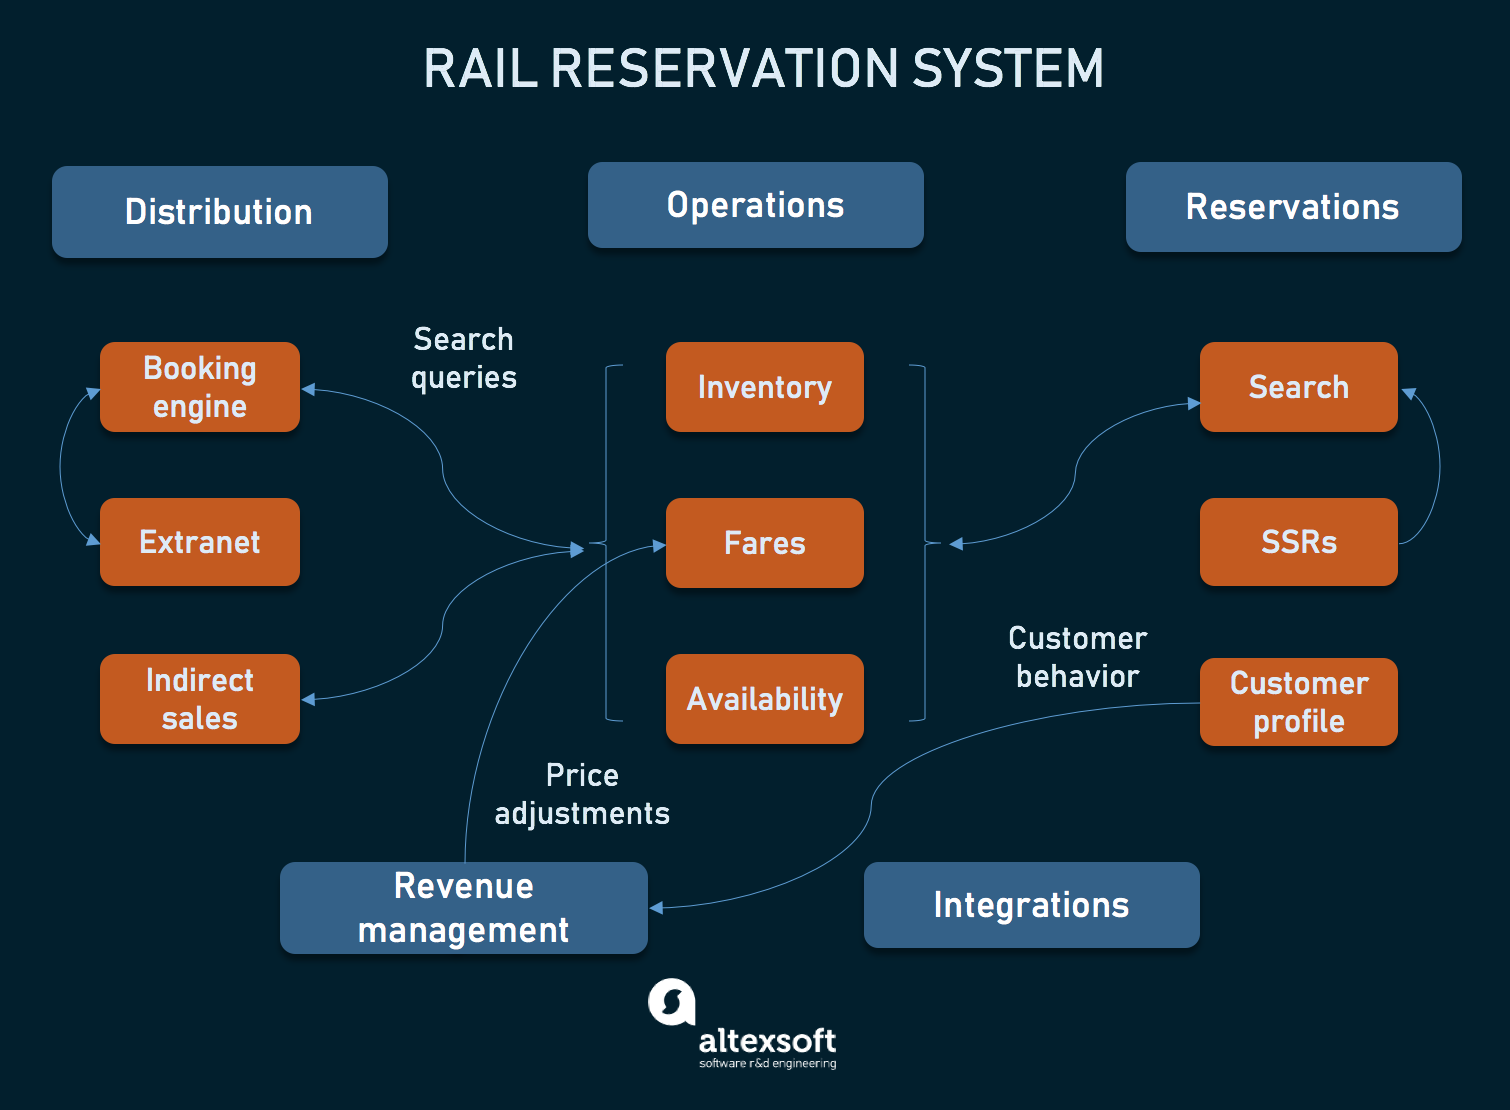 Rail reservation system modules and their connections